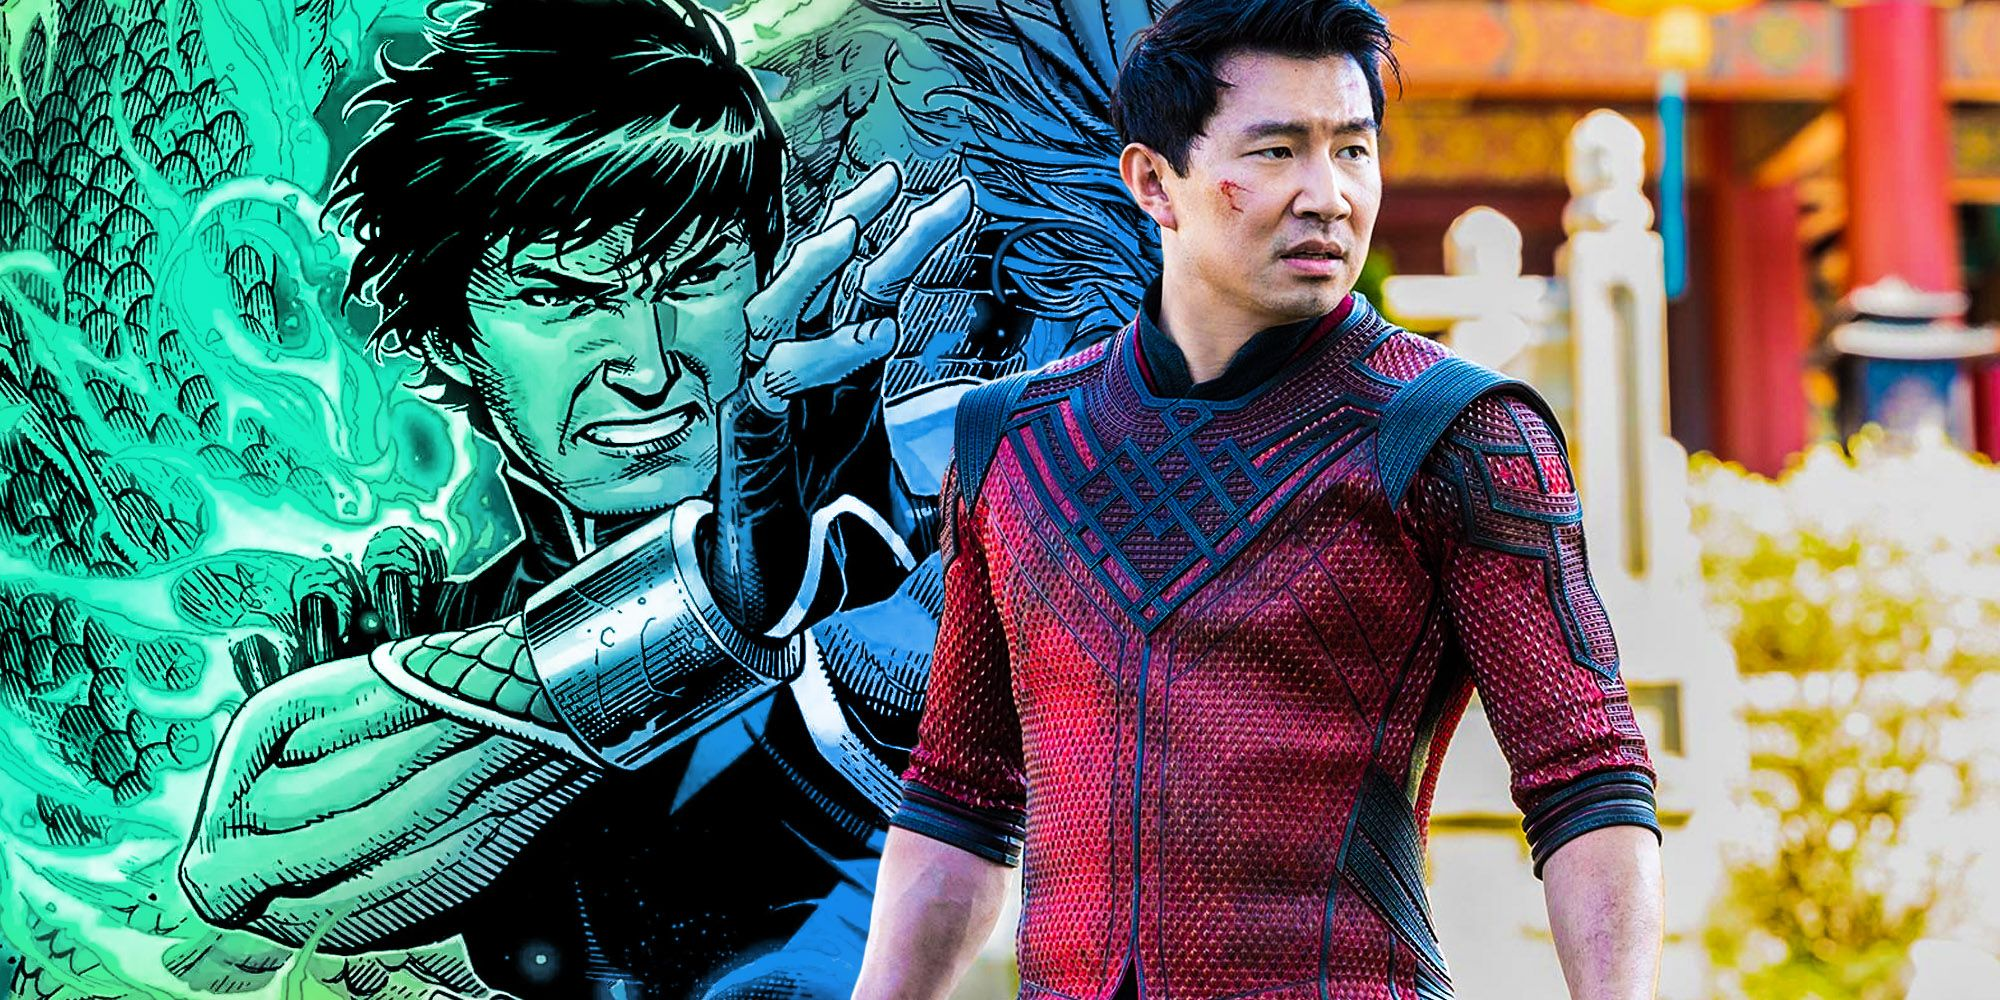 Shang-Chi and the Legend of the Ten Rings Cast